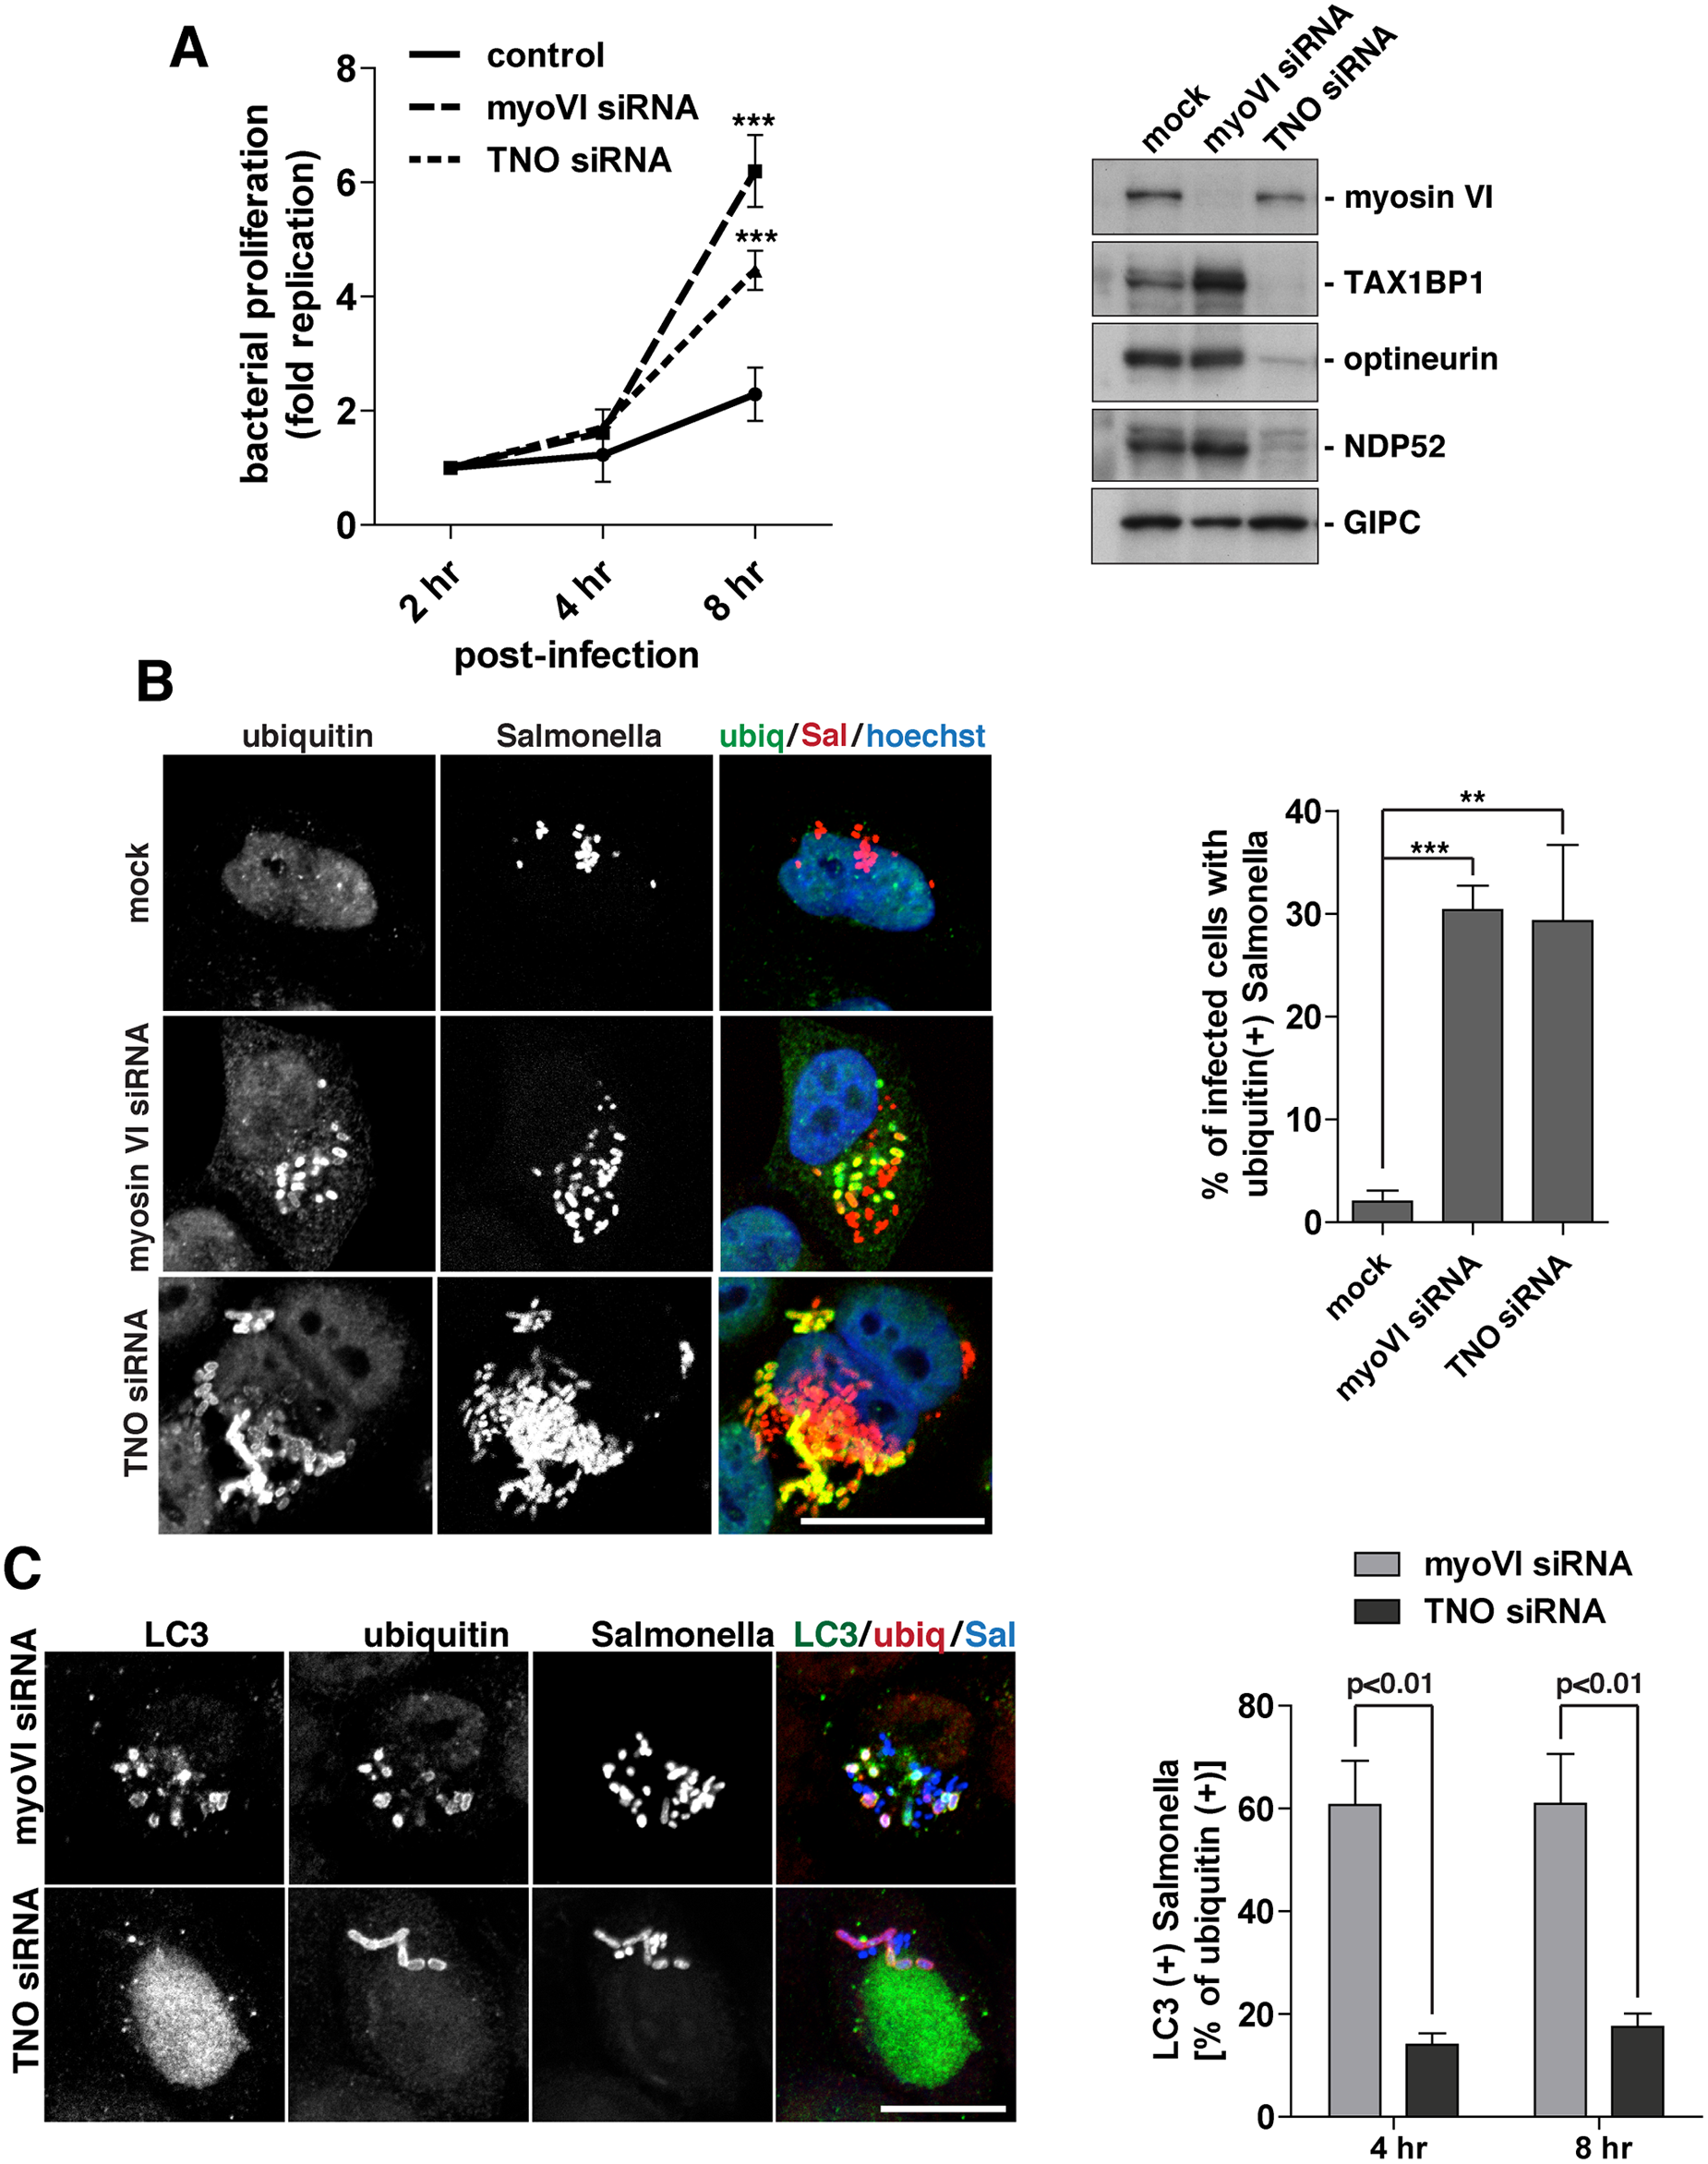 Suppression of myosin VI expression leads to a hyper-proliferation of Salmonella and an accumulation of ubiquitylated Salmonella within LC3-positive autophagosomes.